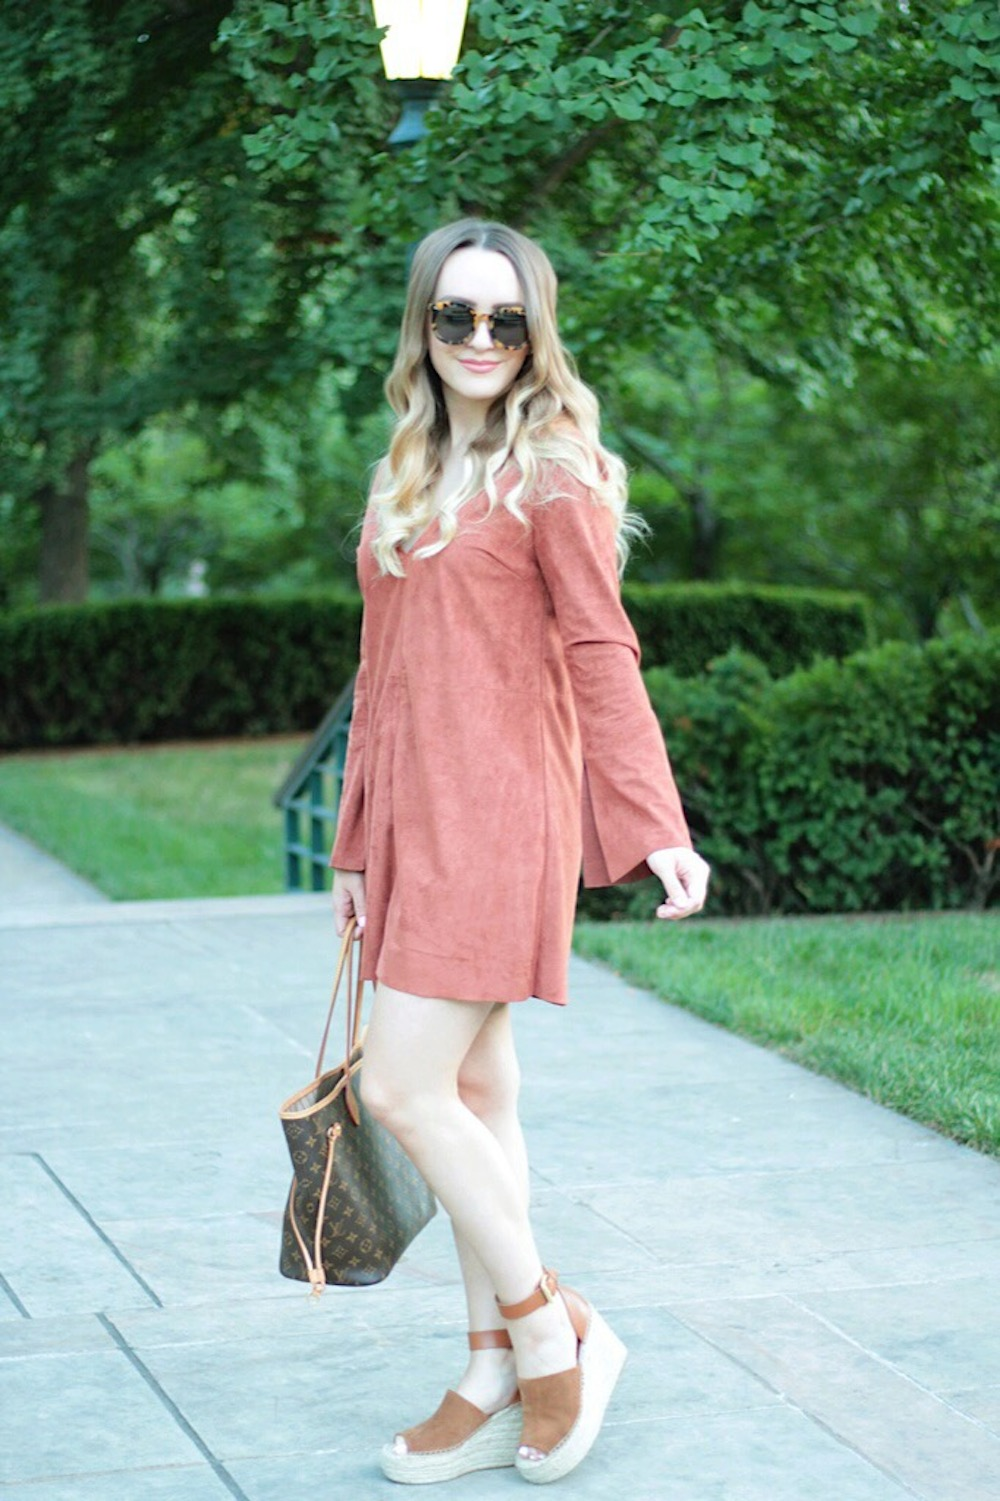 nordstrom astr dress fashion blogger